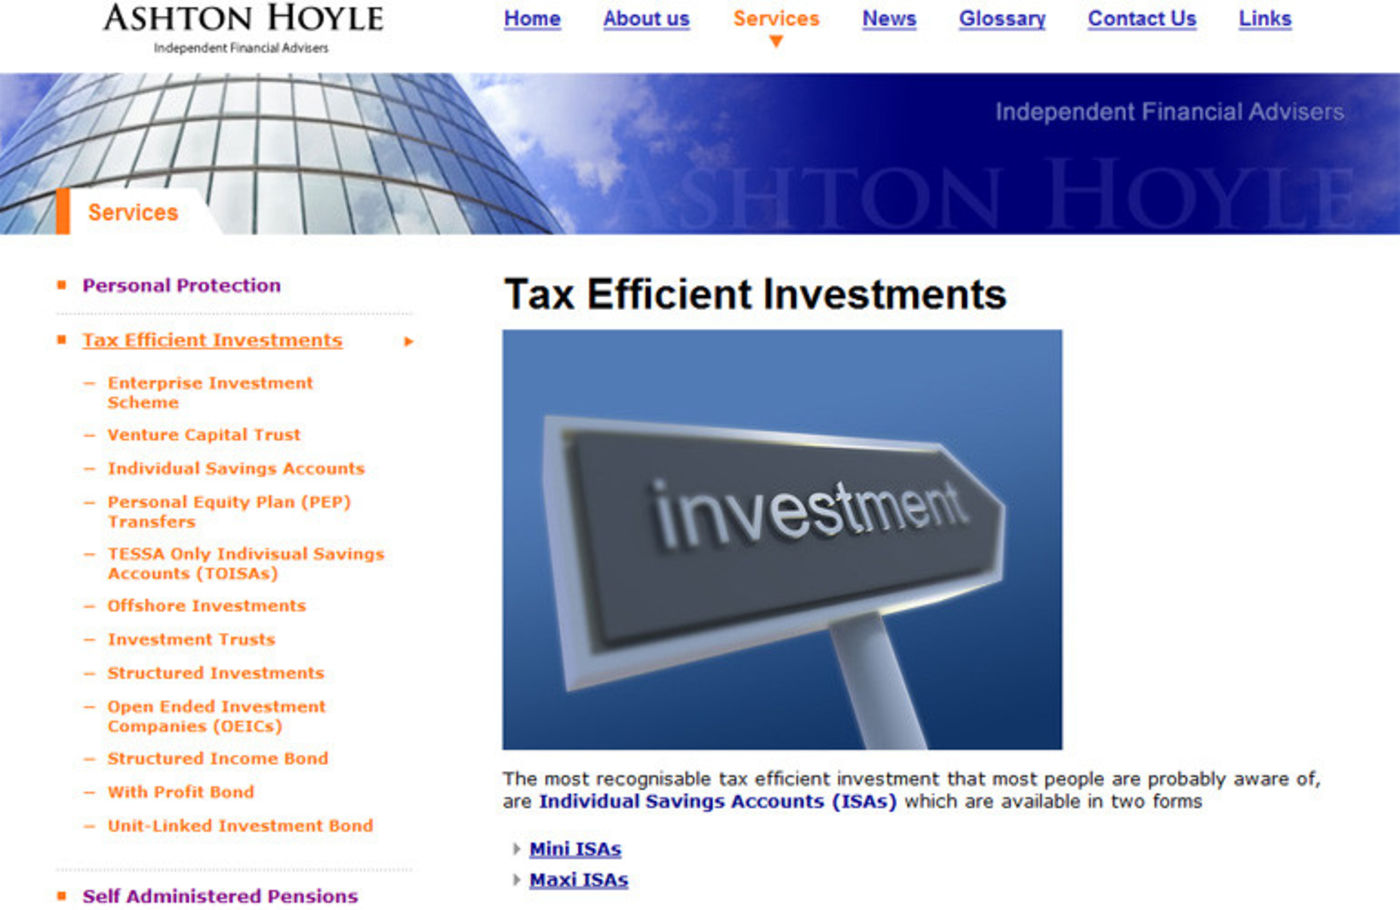 Ashton Hoyle Independent Financial Advisers The efficient investments